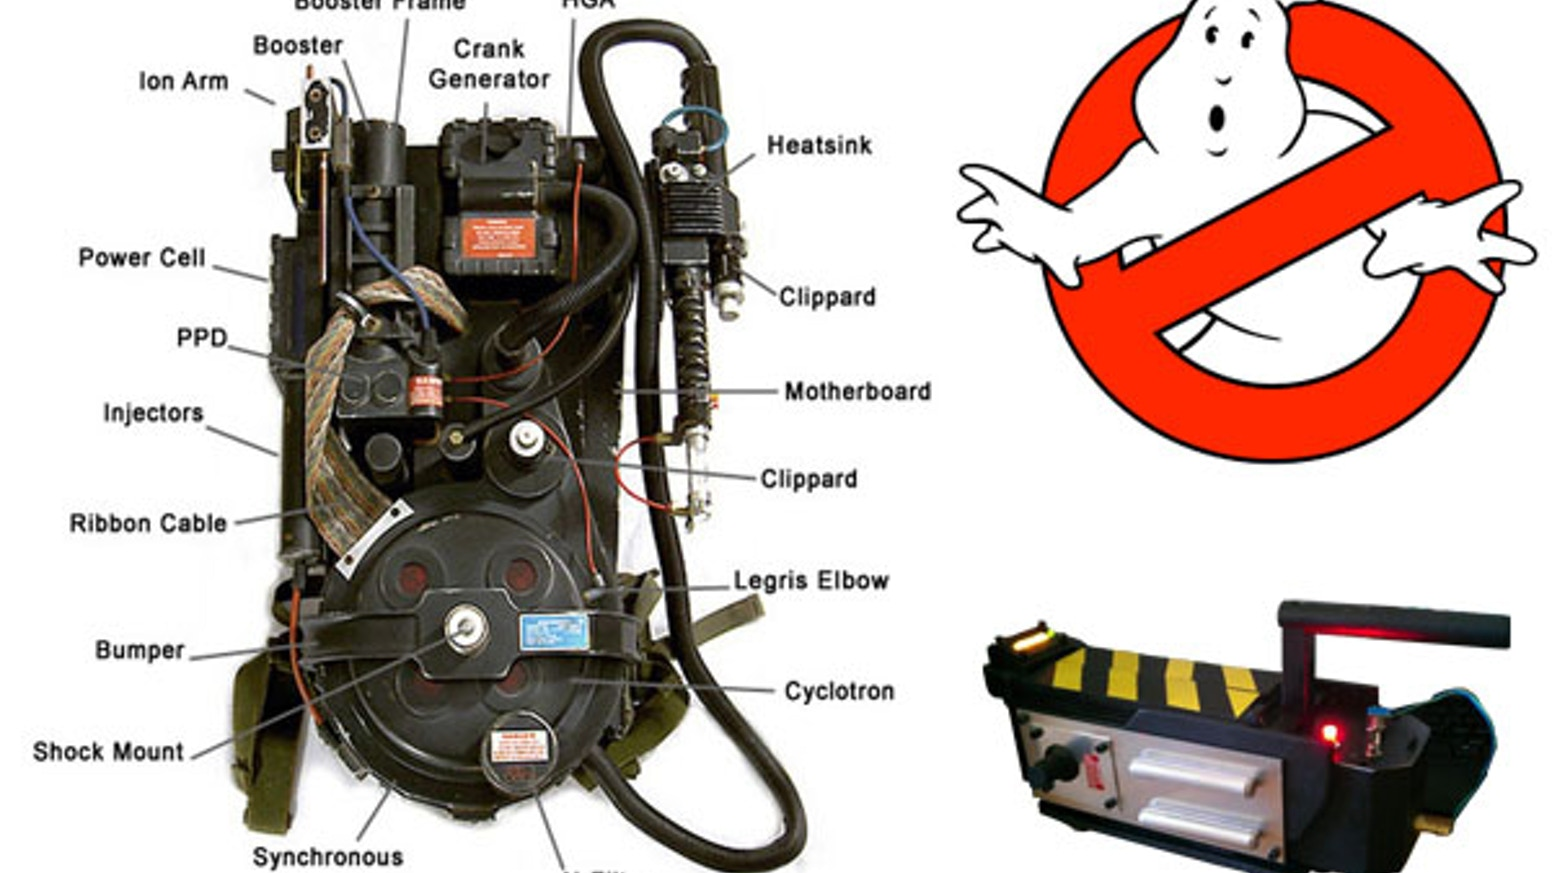 e206850c698 The Ghostbusters [ Proton pack ] project by kristian hillsman ...